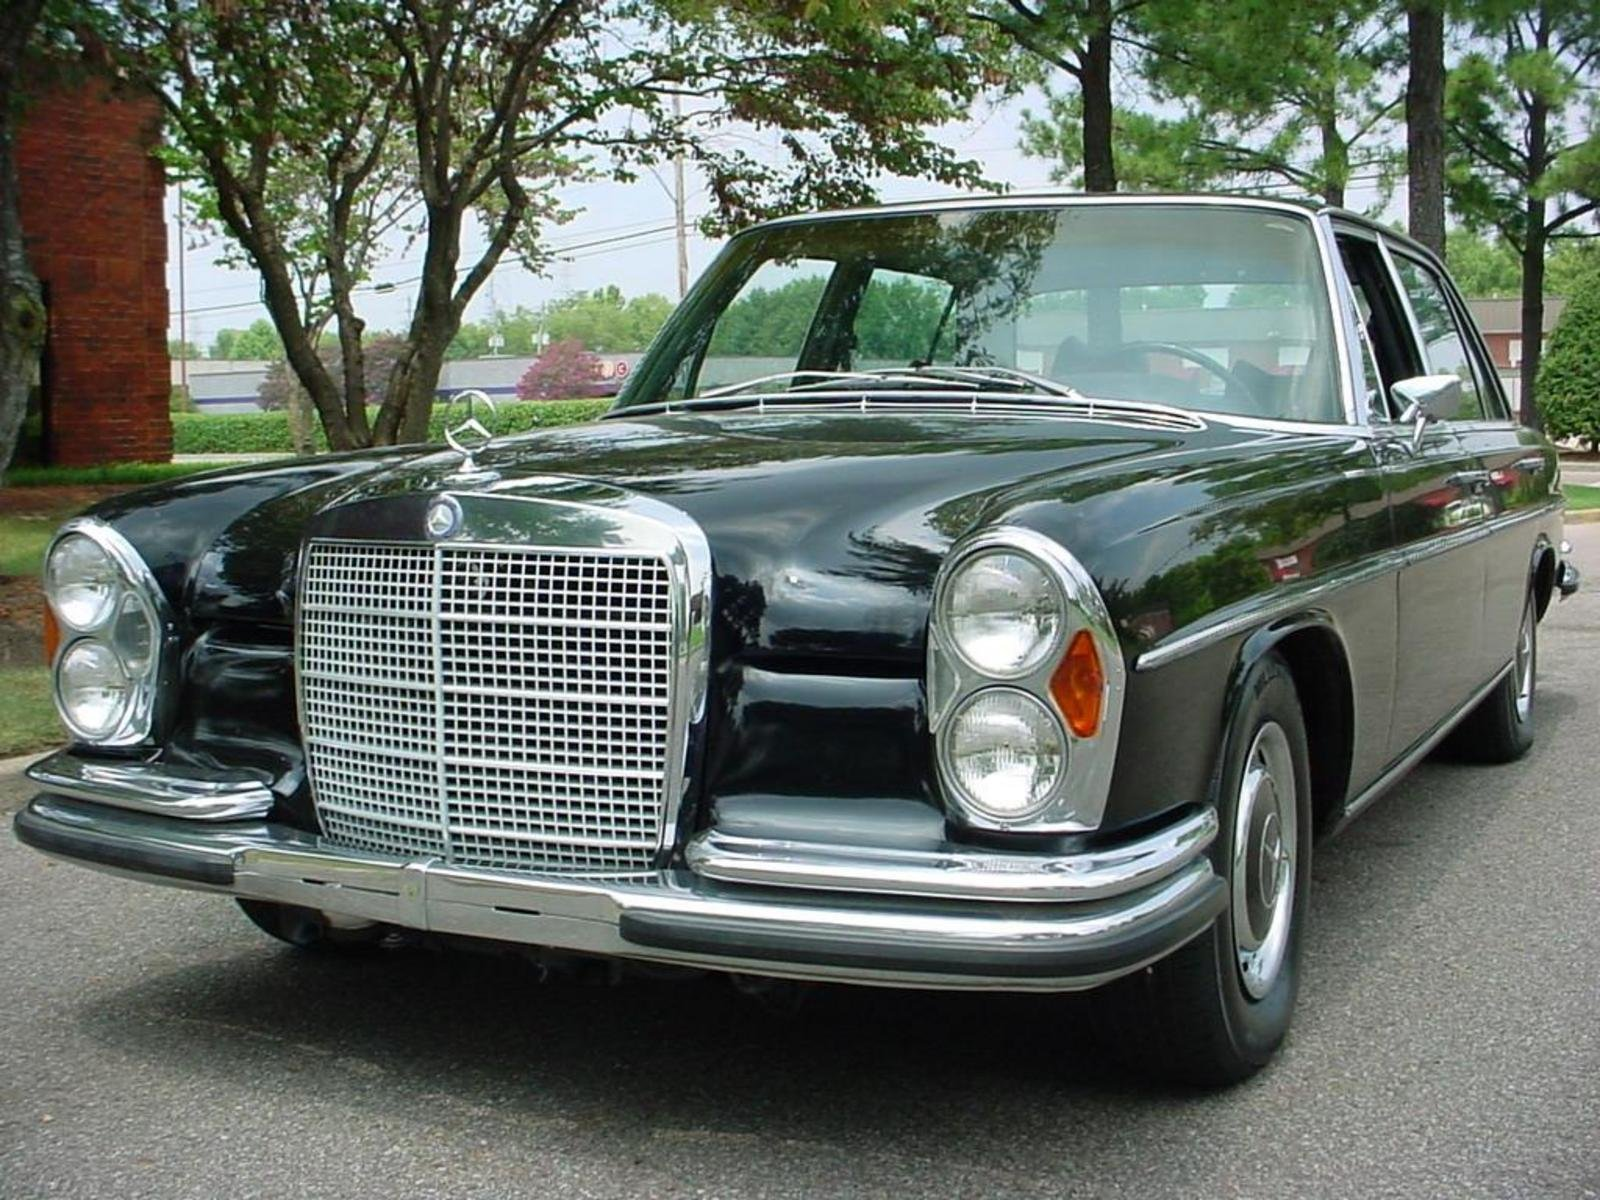 mcqueen mercedes 300 sel 6 3 for sale news top speed. Black Bedroom Furniture Sets. Home Design Ideas